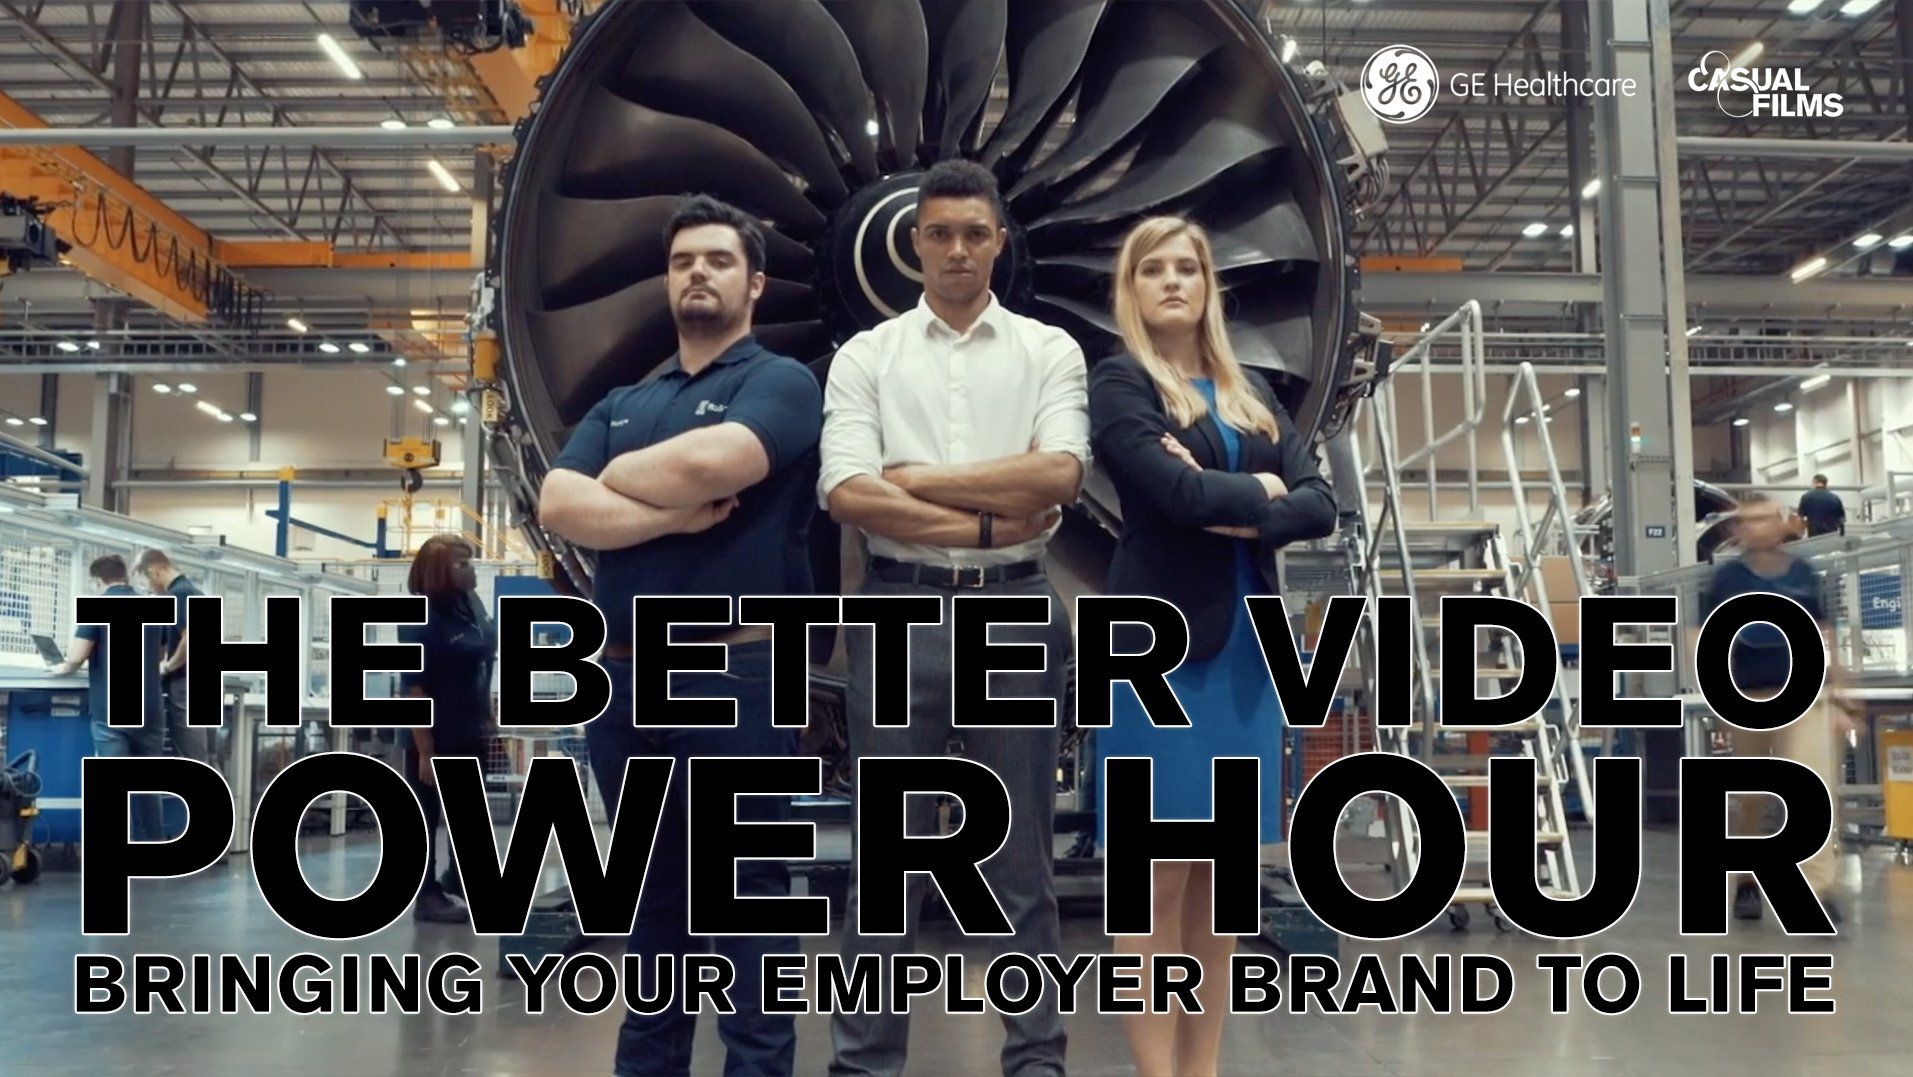 GE Healthcare Employer Brand to Life 3 shot